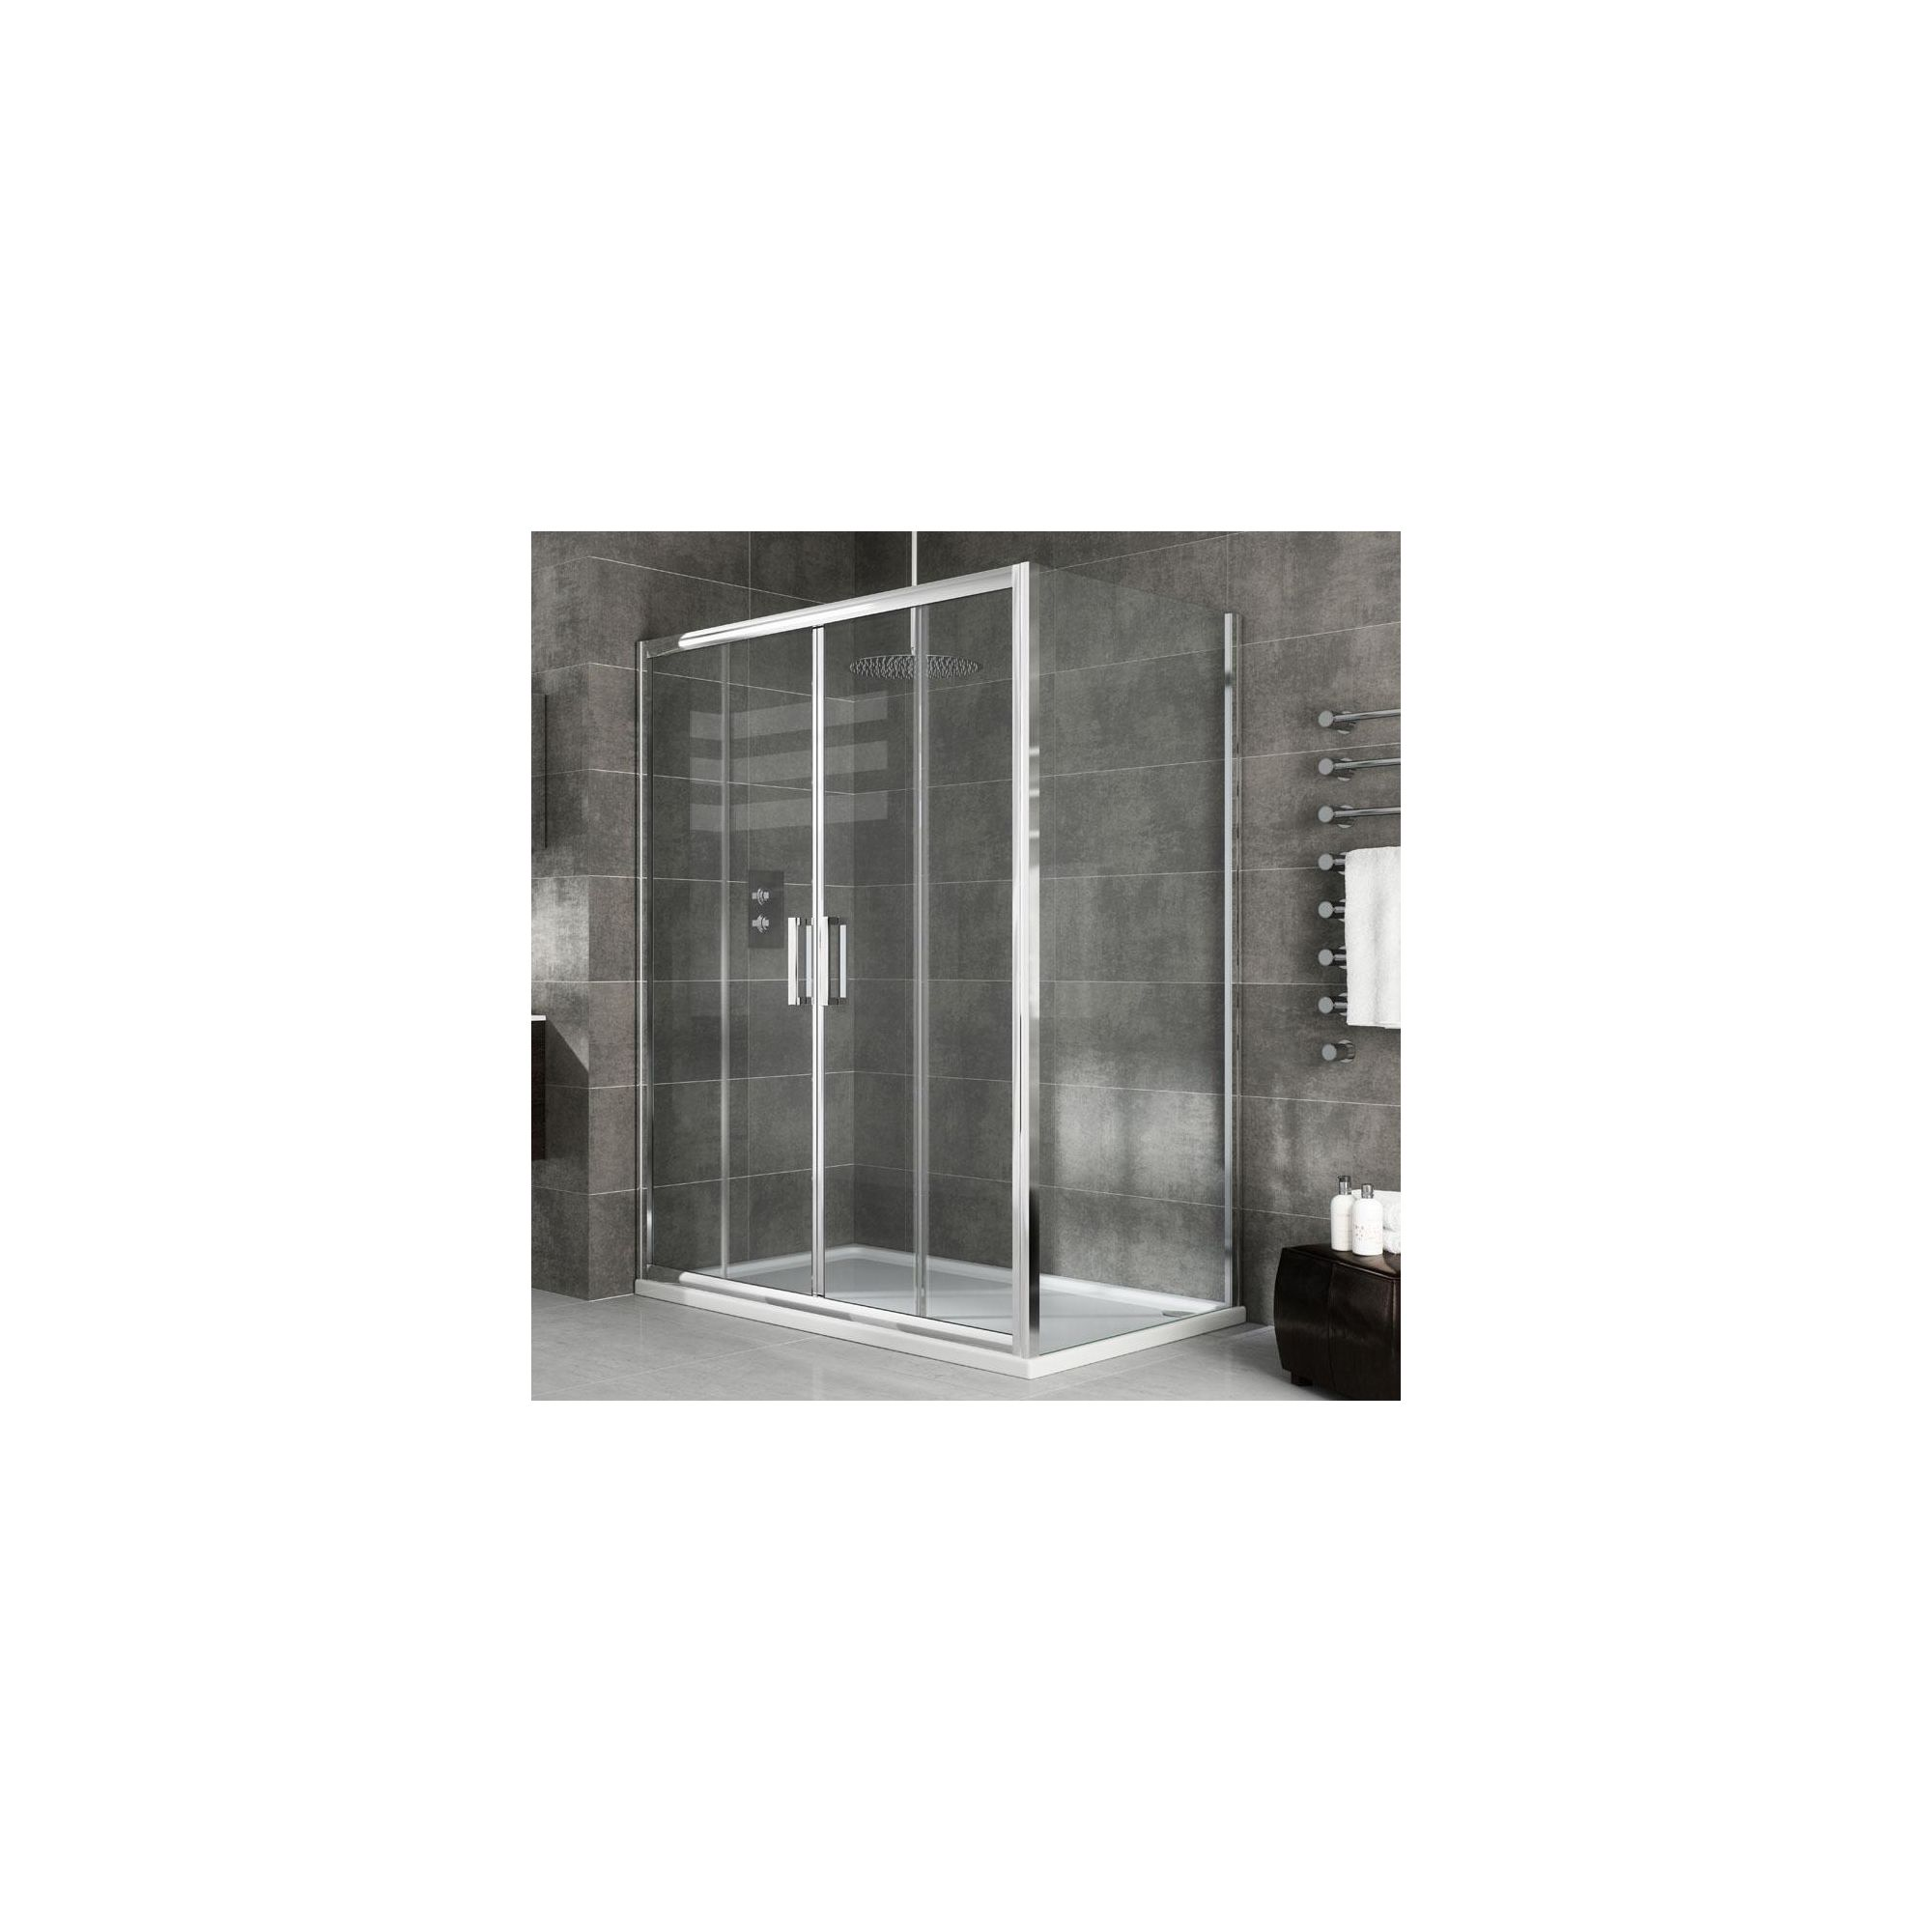 Elemis Eternity Hinged Door Shower Enclosure, 760mm x 760mm, 8mm Glass, Low Profile Tray at Tescos Direct